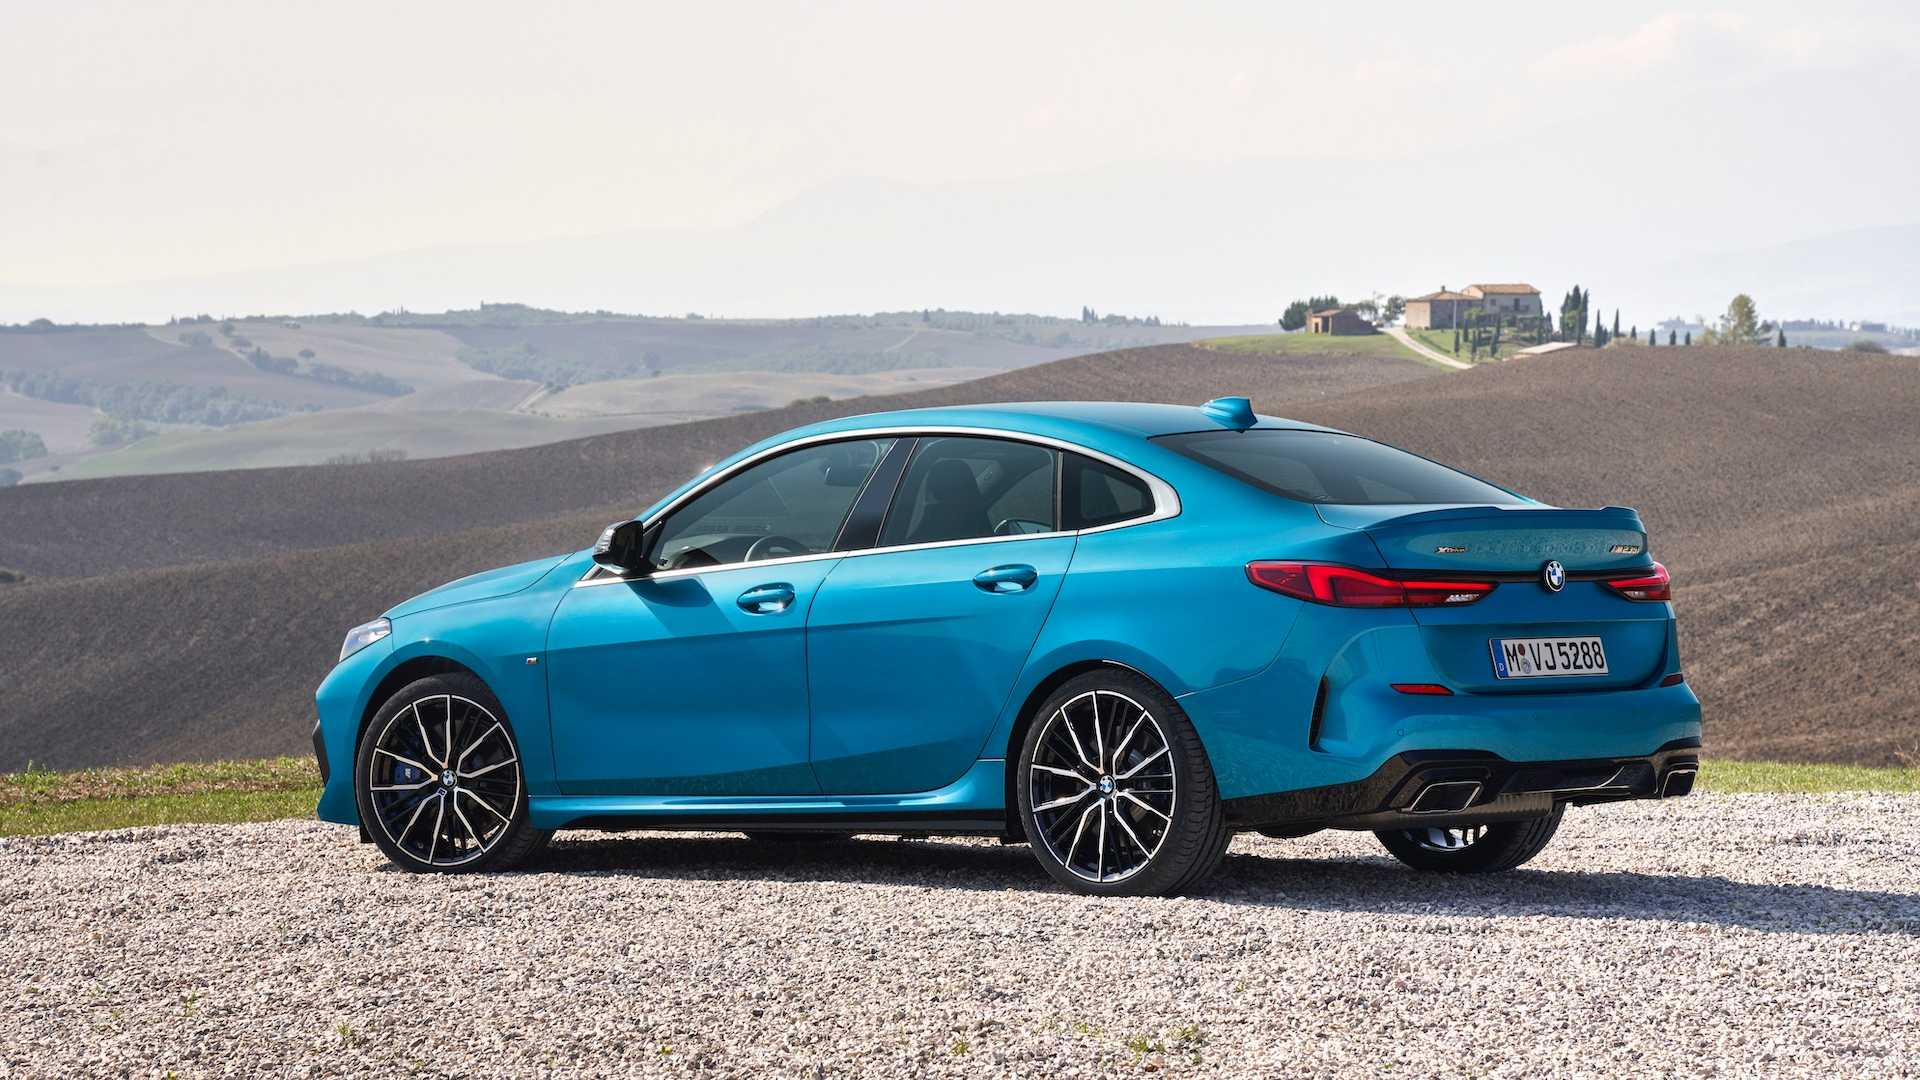 2020-bmw-2-series-gran-coupe-75